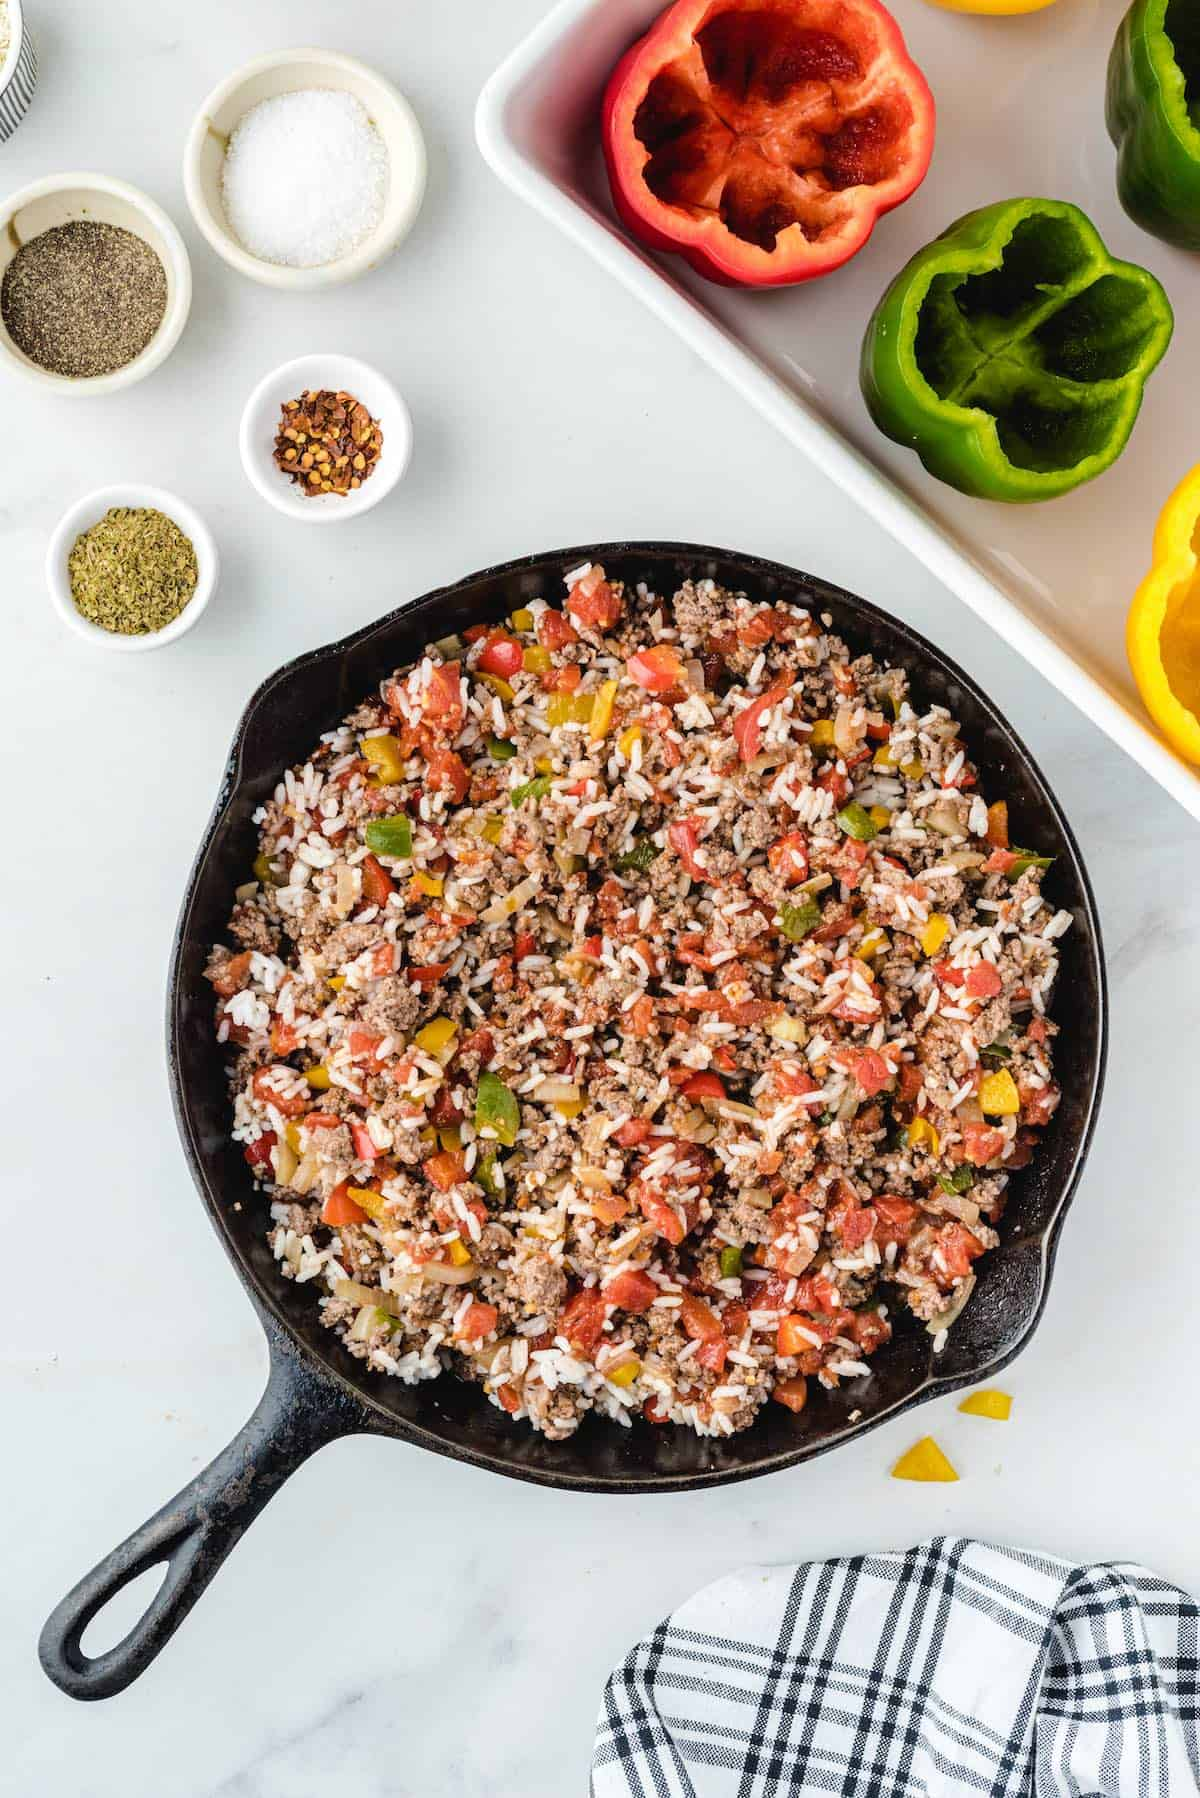 mixture of diced bell peppers, ground beef, rice in a pan